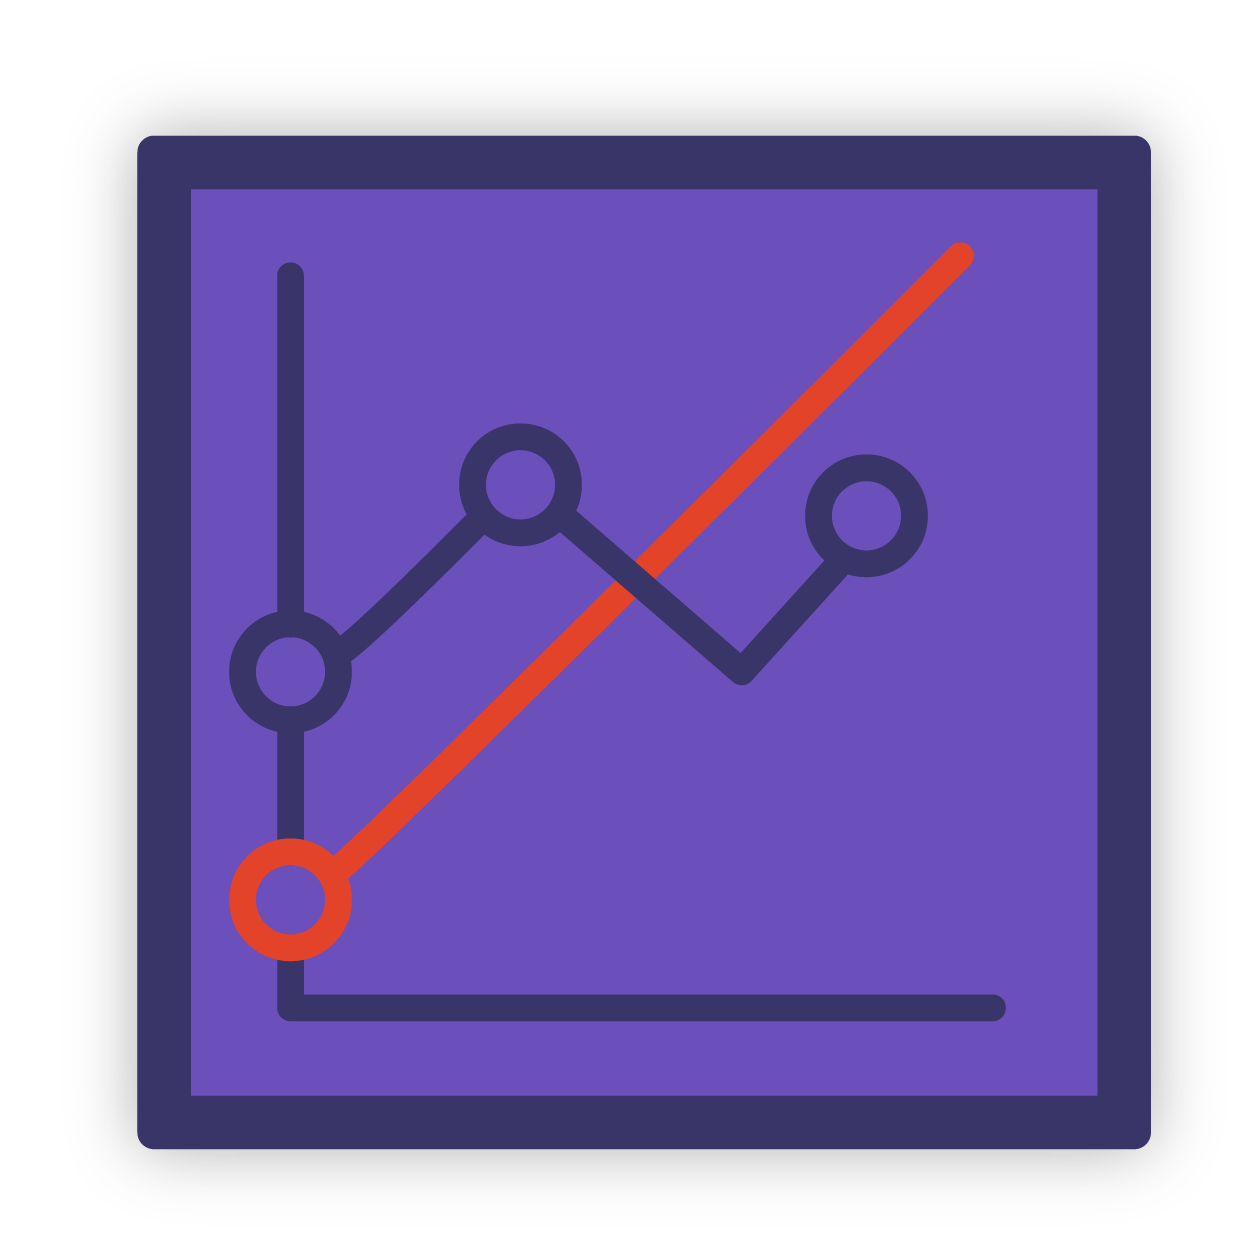 design/presentation-decks/_general-assets/icons/illustrated-icons/graph-icon.png